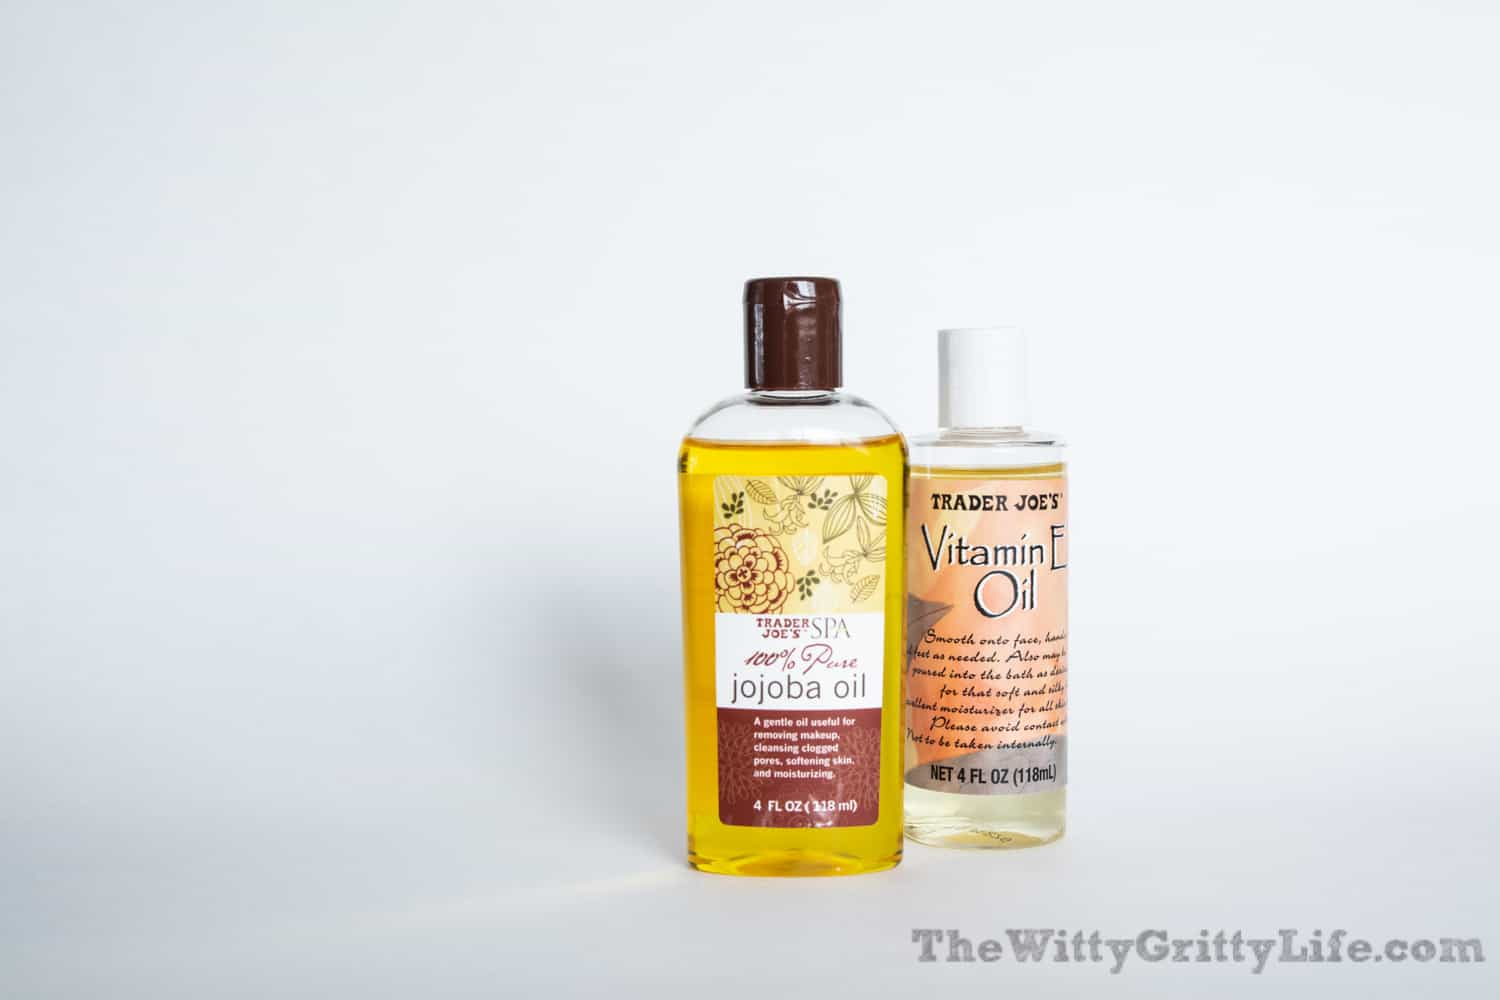 jojoba and vitamin E oils used to make your own hand sanitizer without alcohol